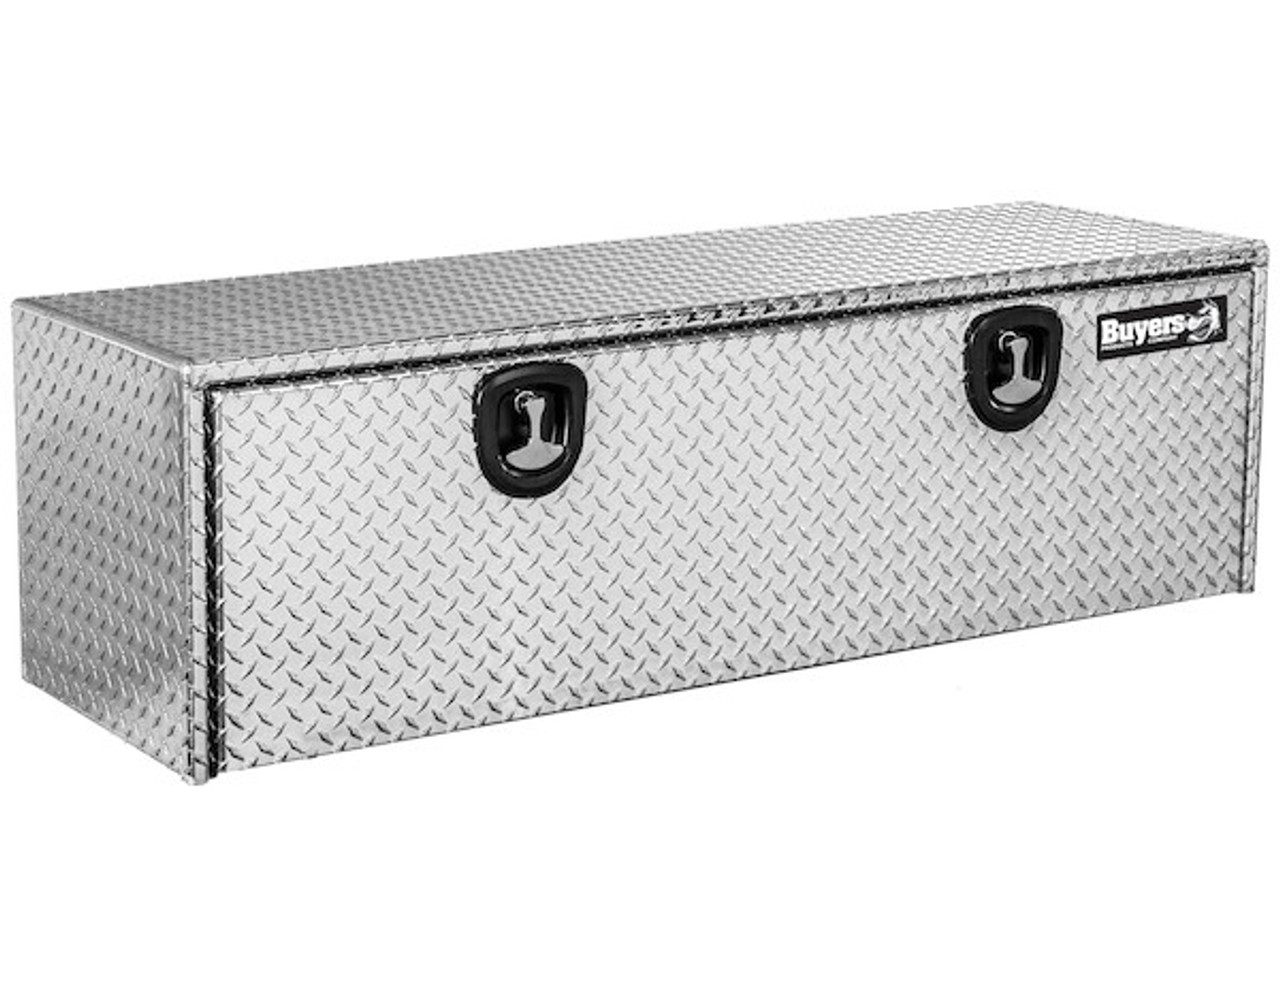 "1705110 BUYERS PRODUCTS DIAMOND TREAD ALUMINUM UNDERBODY TRUCK TOOLBOX 18""HX18""DX48""W"